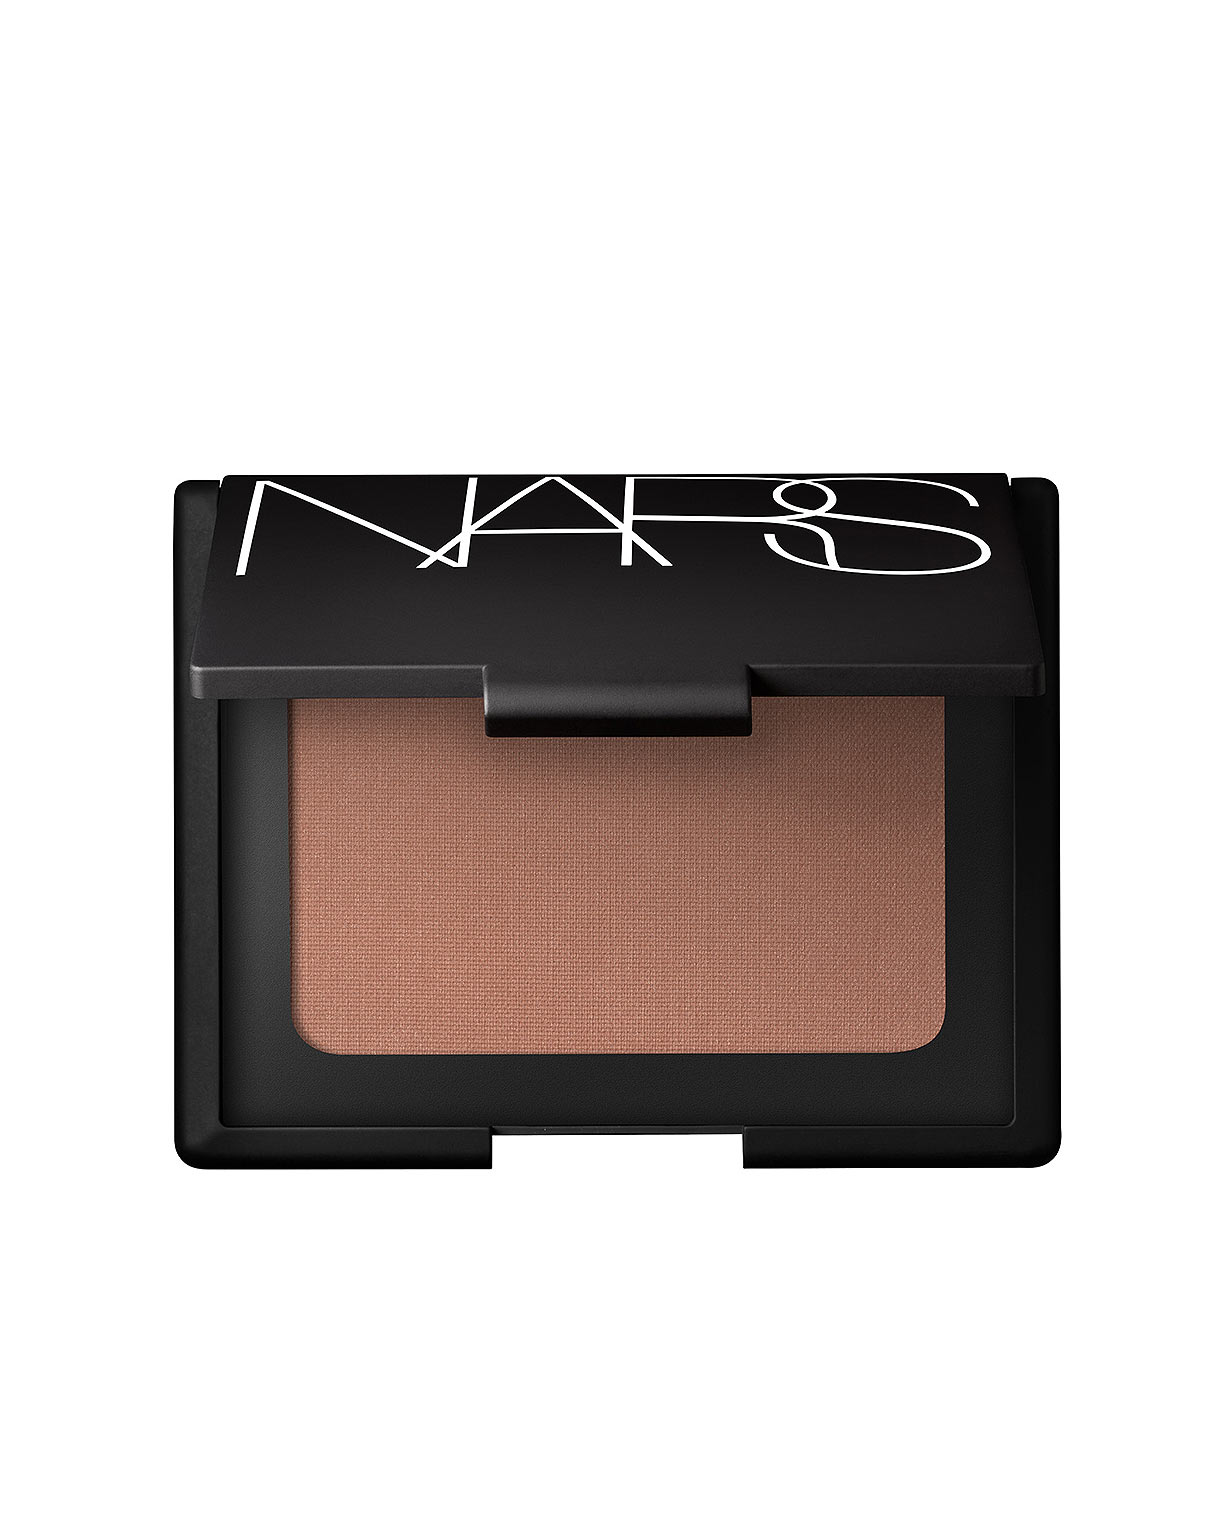 big-day-beauty-awards-nars-cosmetics-laguna-bronzer-0216.jpg